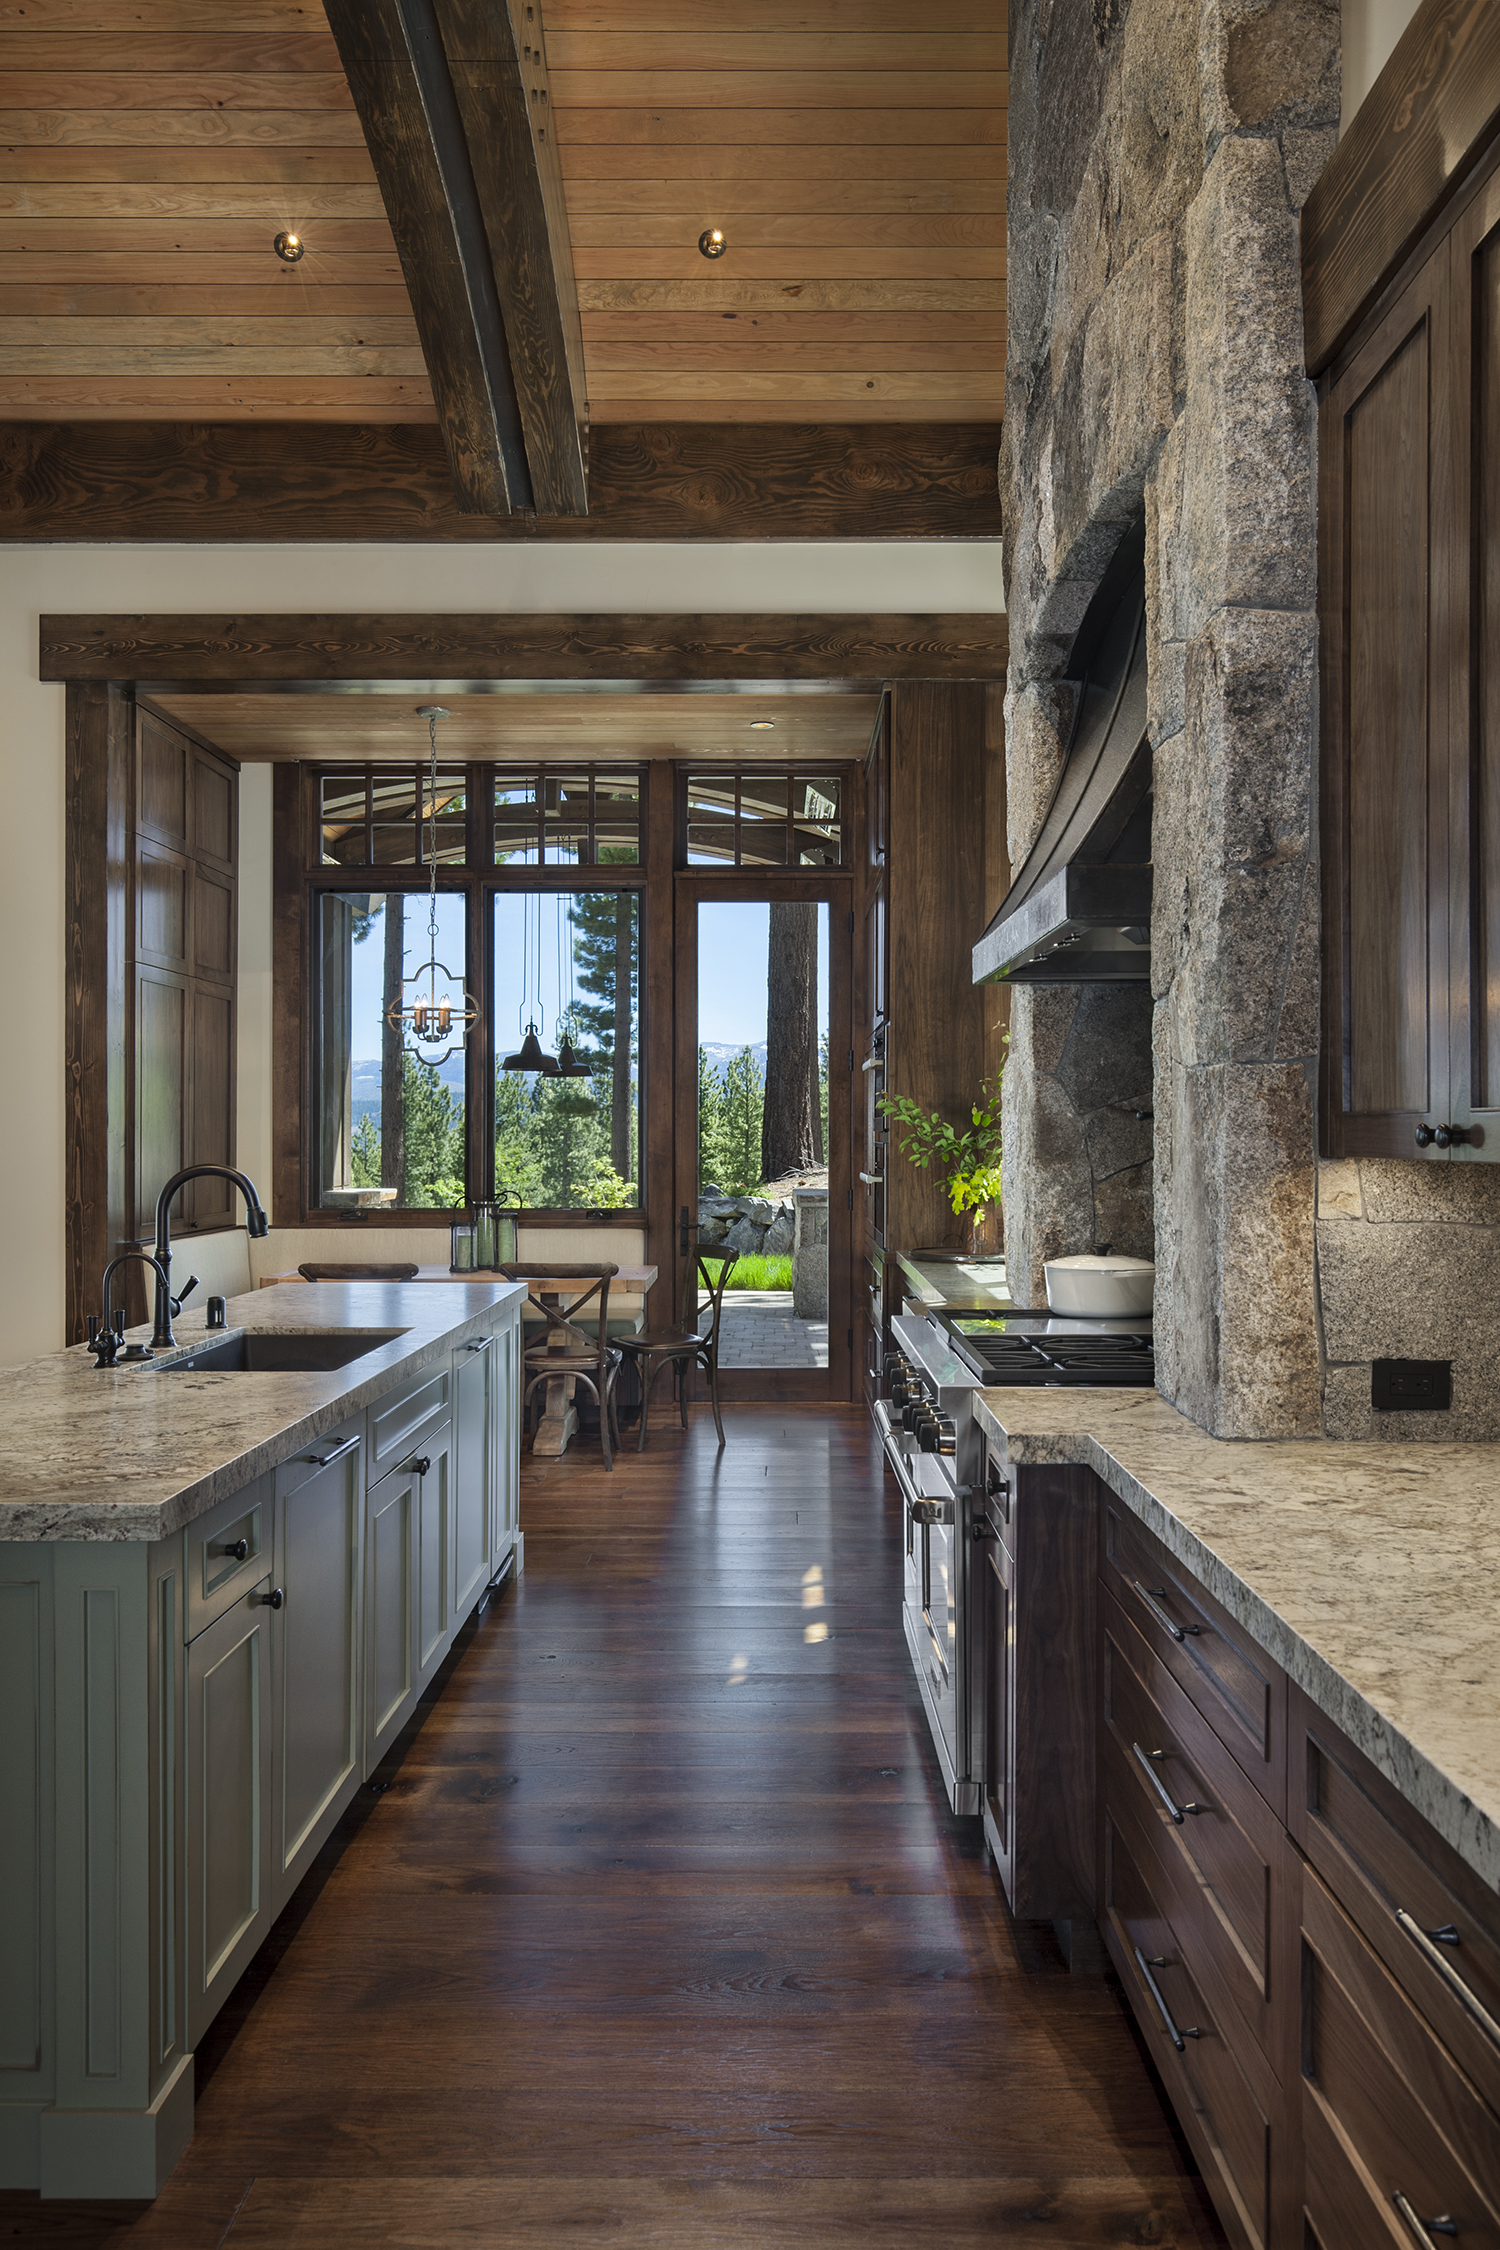 Lot 640_Kitchen_Side View_Nook_Wood_Custom Cabinetry_Slabs.jpg